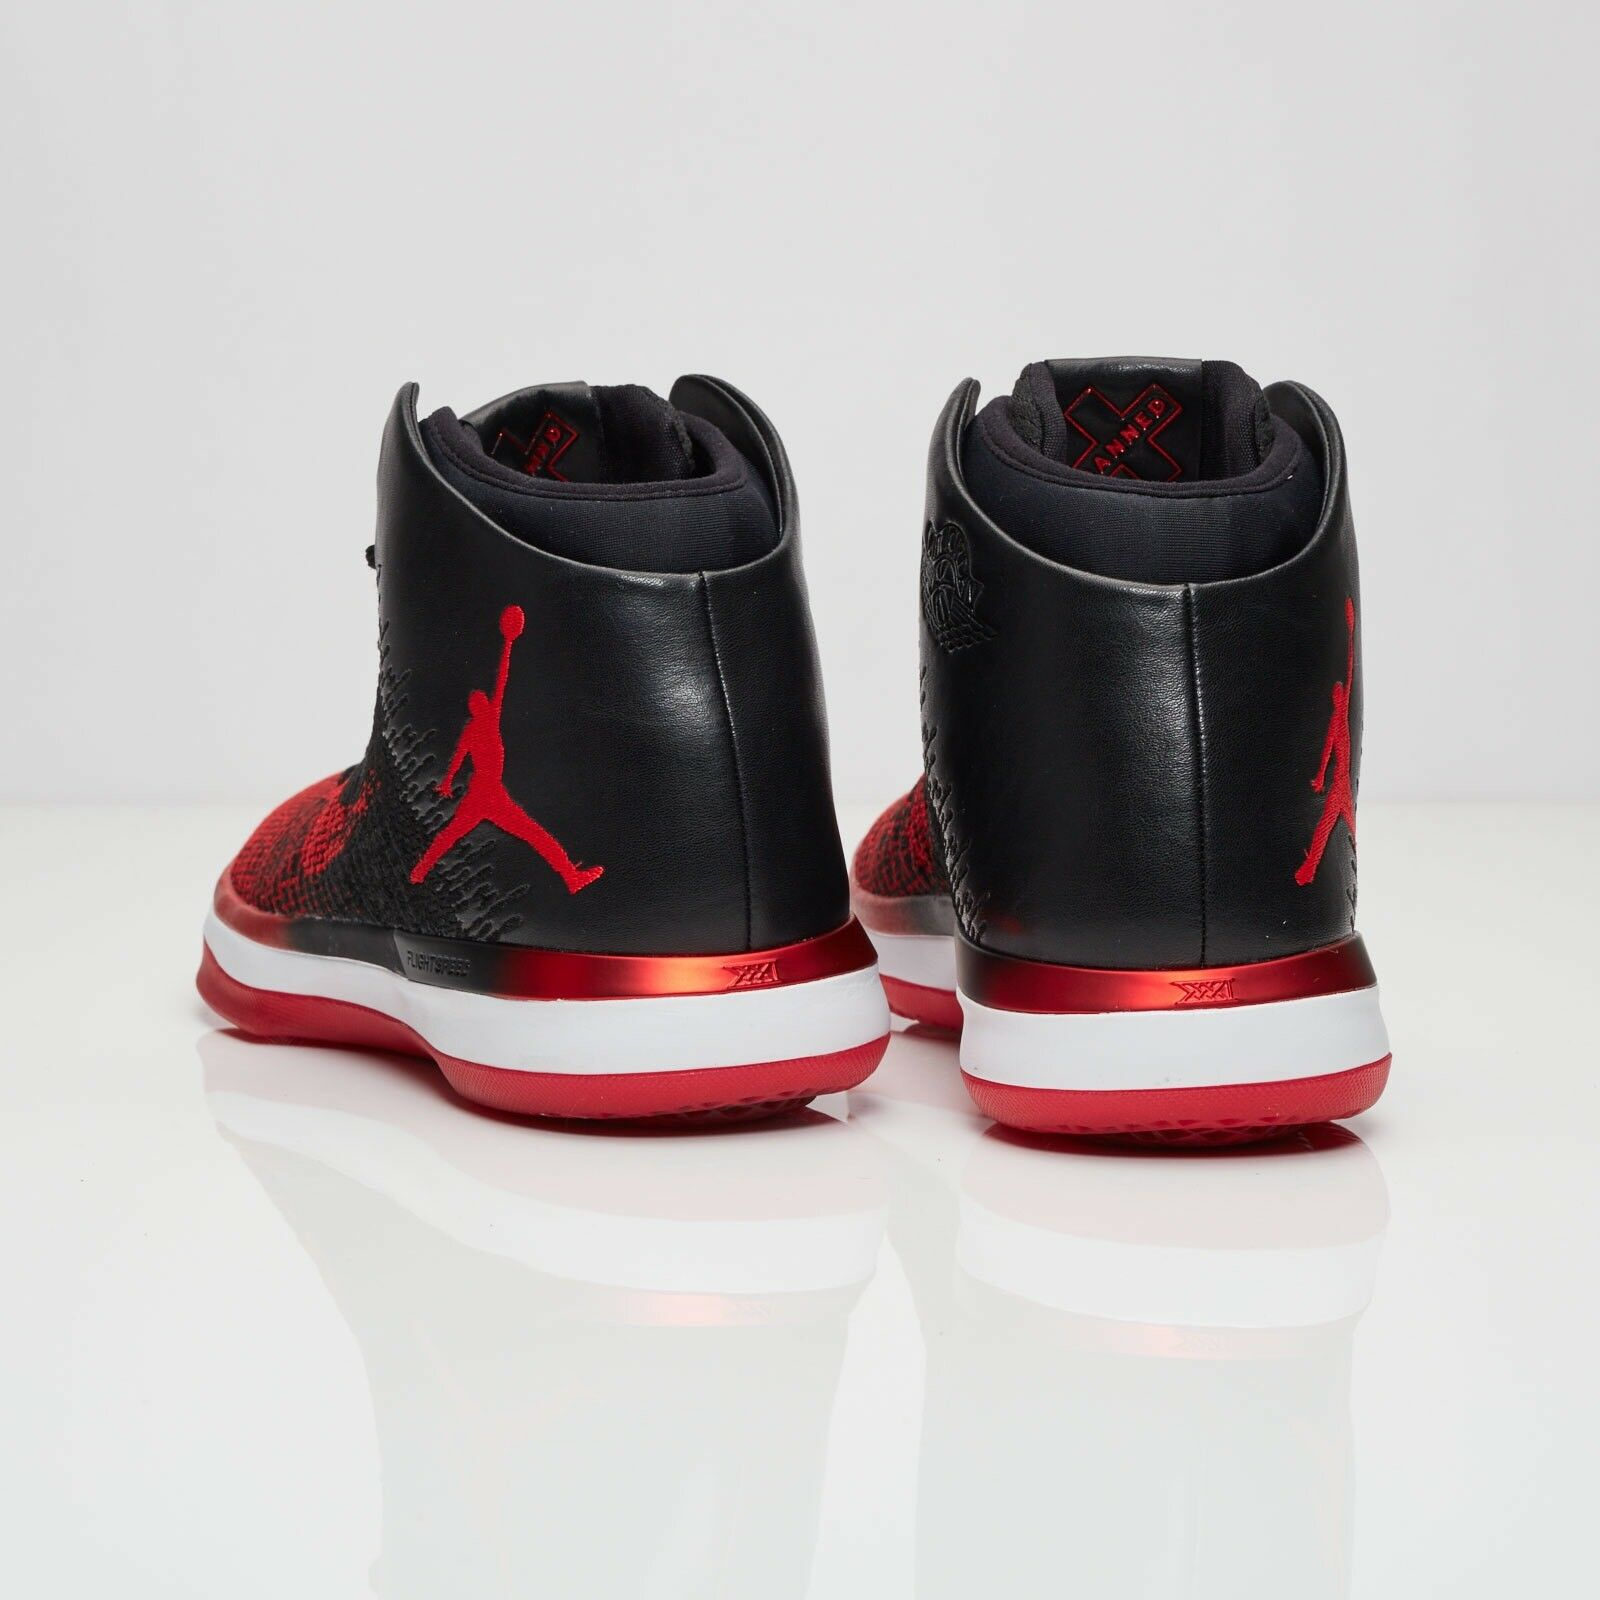 Nike air jordan 4 retrò iv